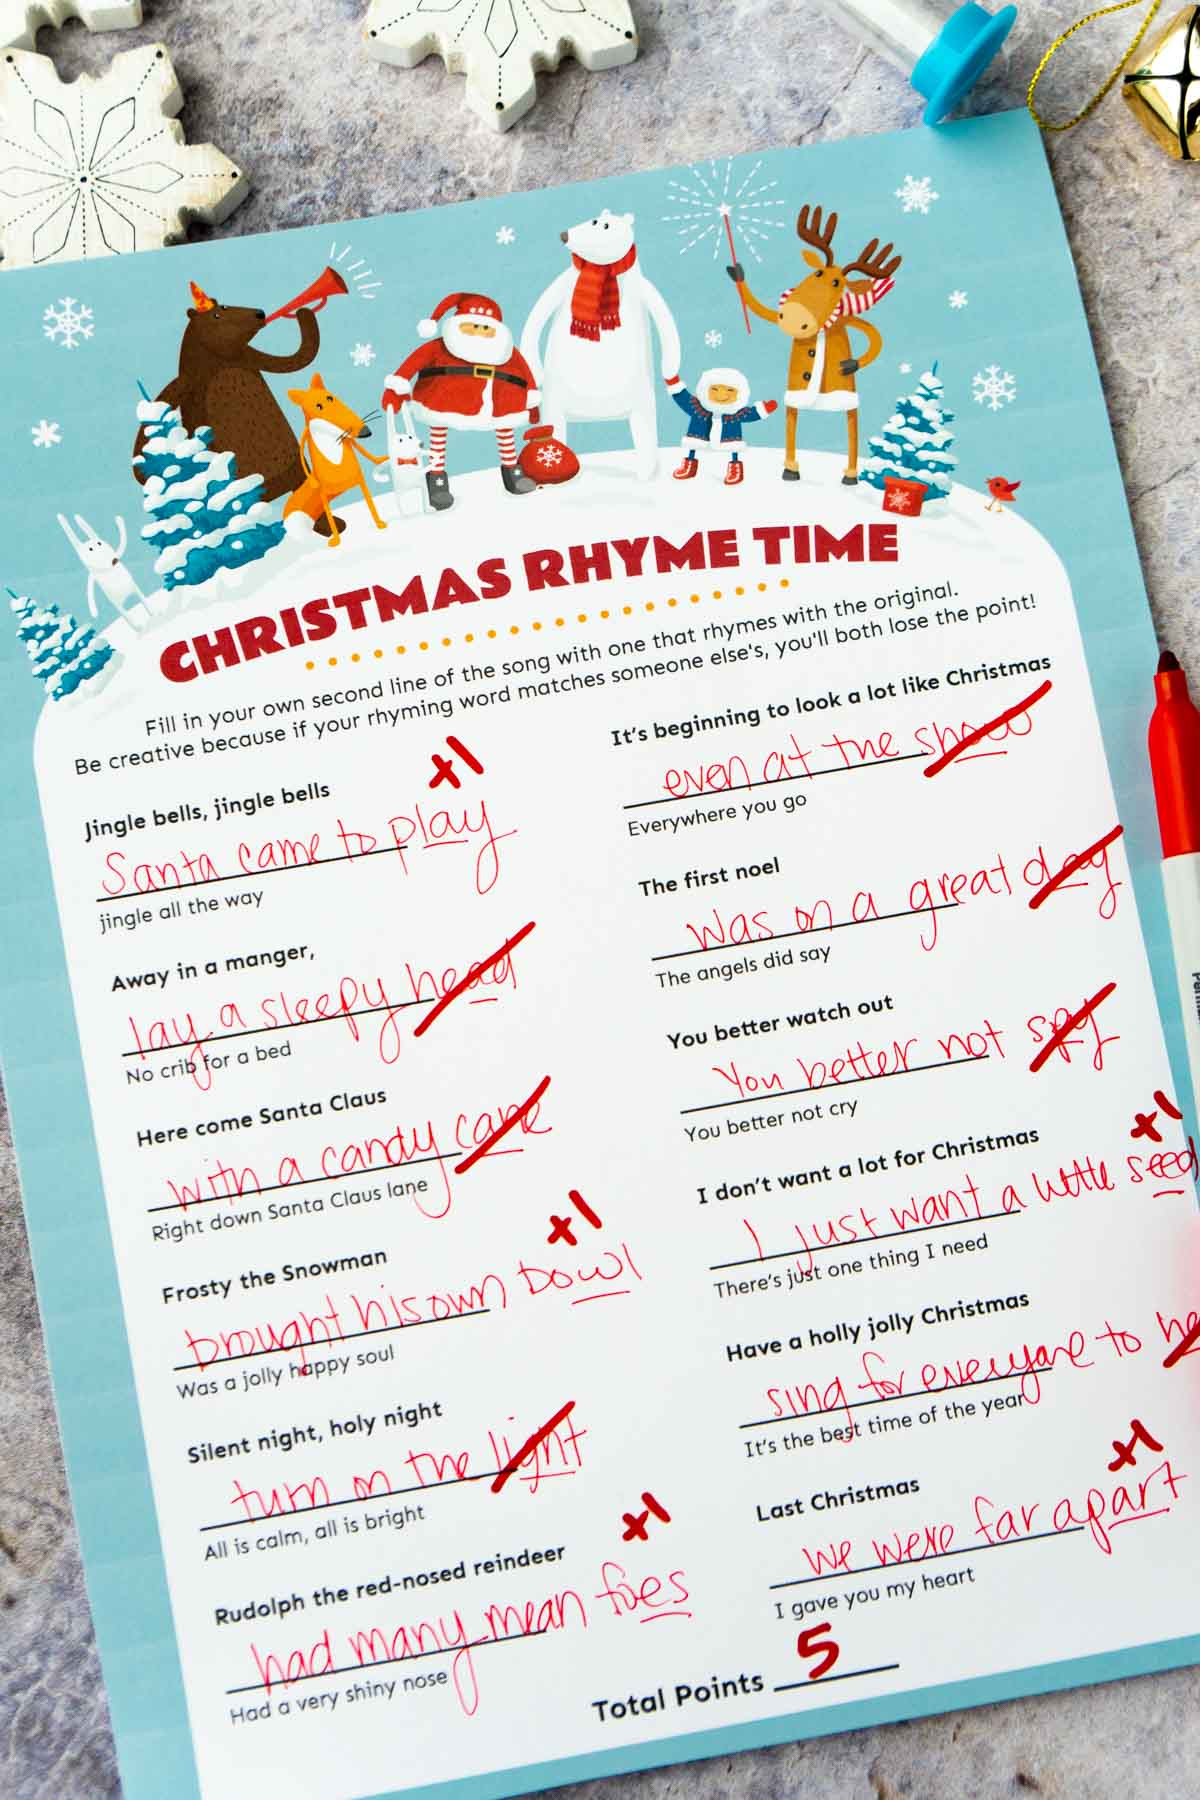 Christmas rhyme game with questions crossed off